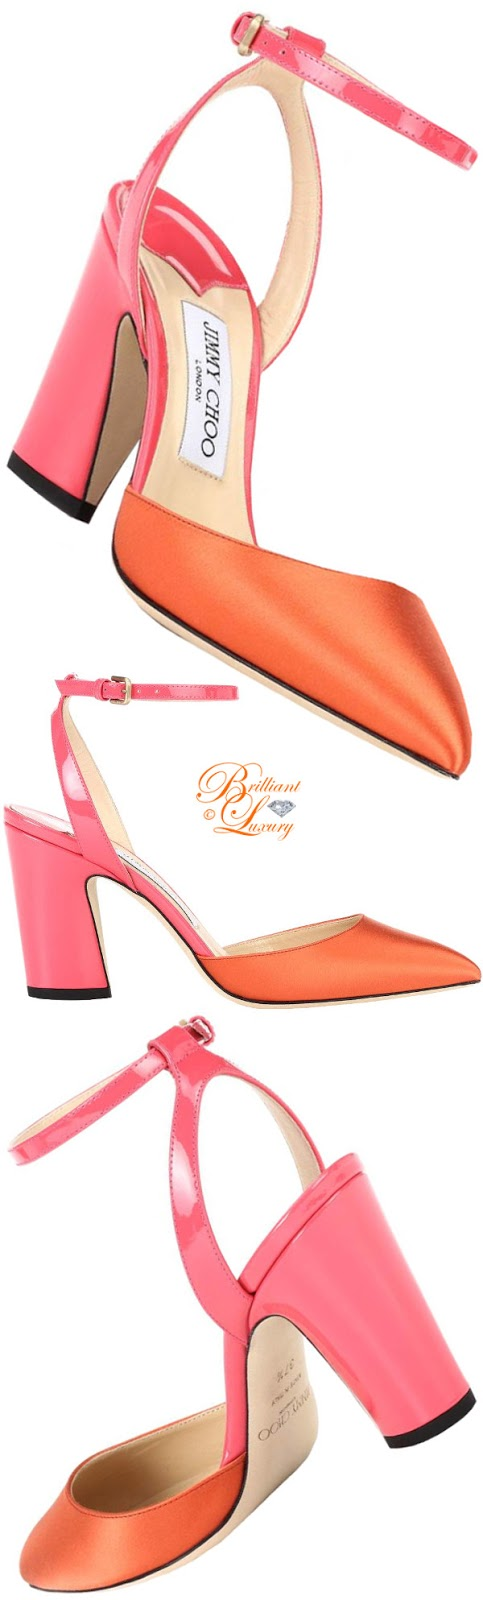 Brilliant Luxury ♦ Jimmy Choo Micky satin sandals #orange